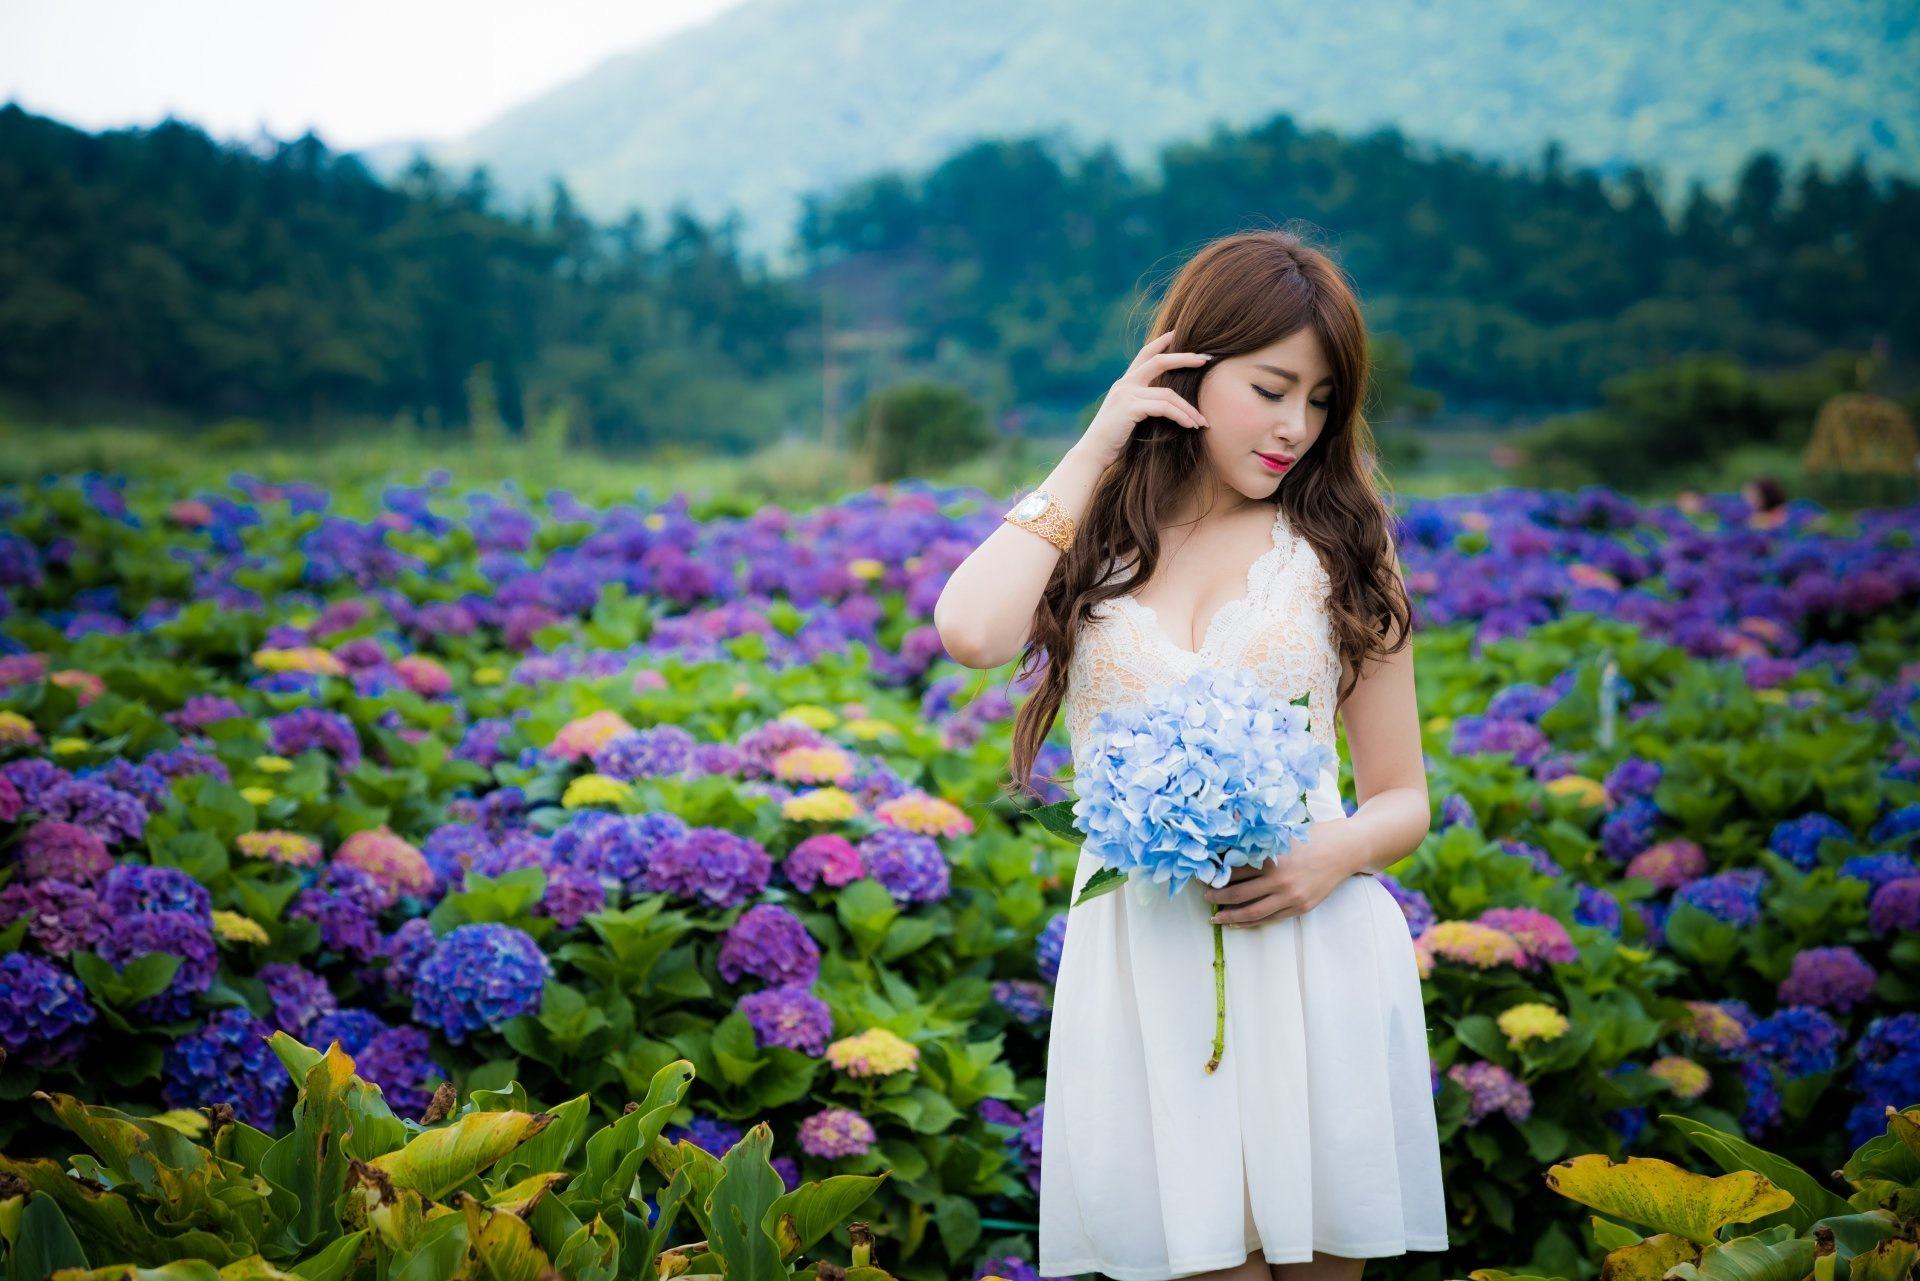 Wallpapers ID:937220